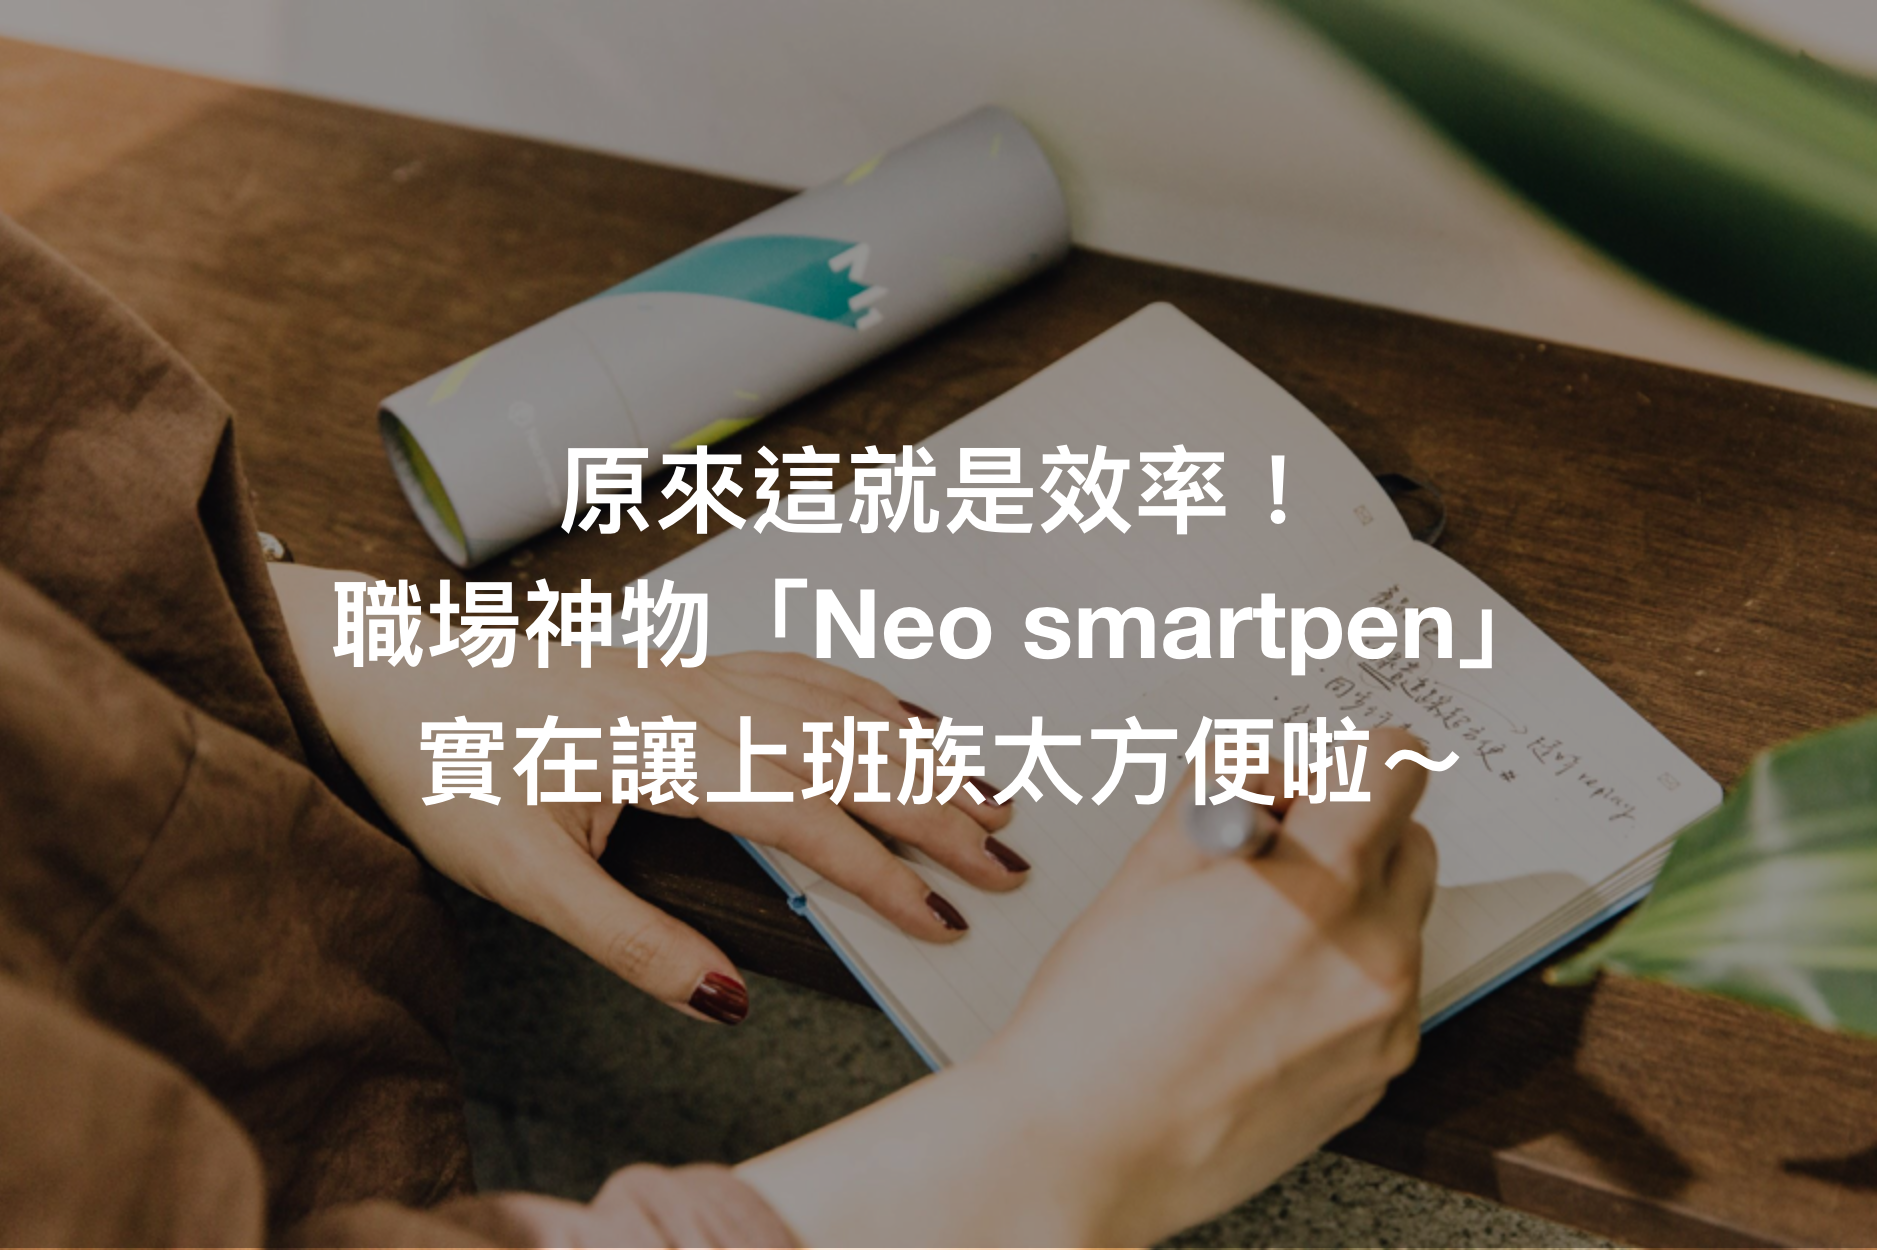 【BetweenGos 職場才女-職場小物開箱】-神奇智慧筆Neo smartpen